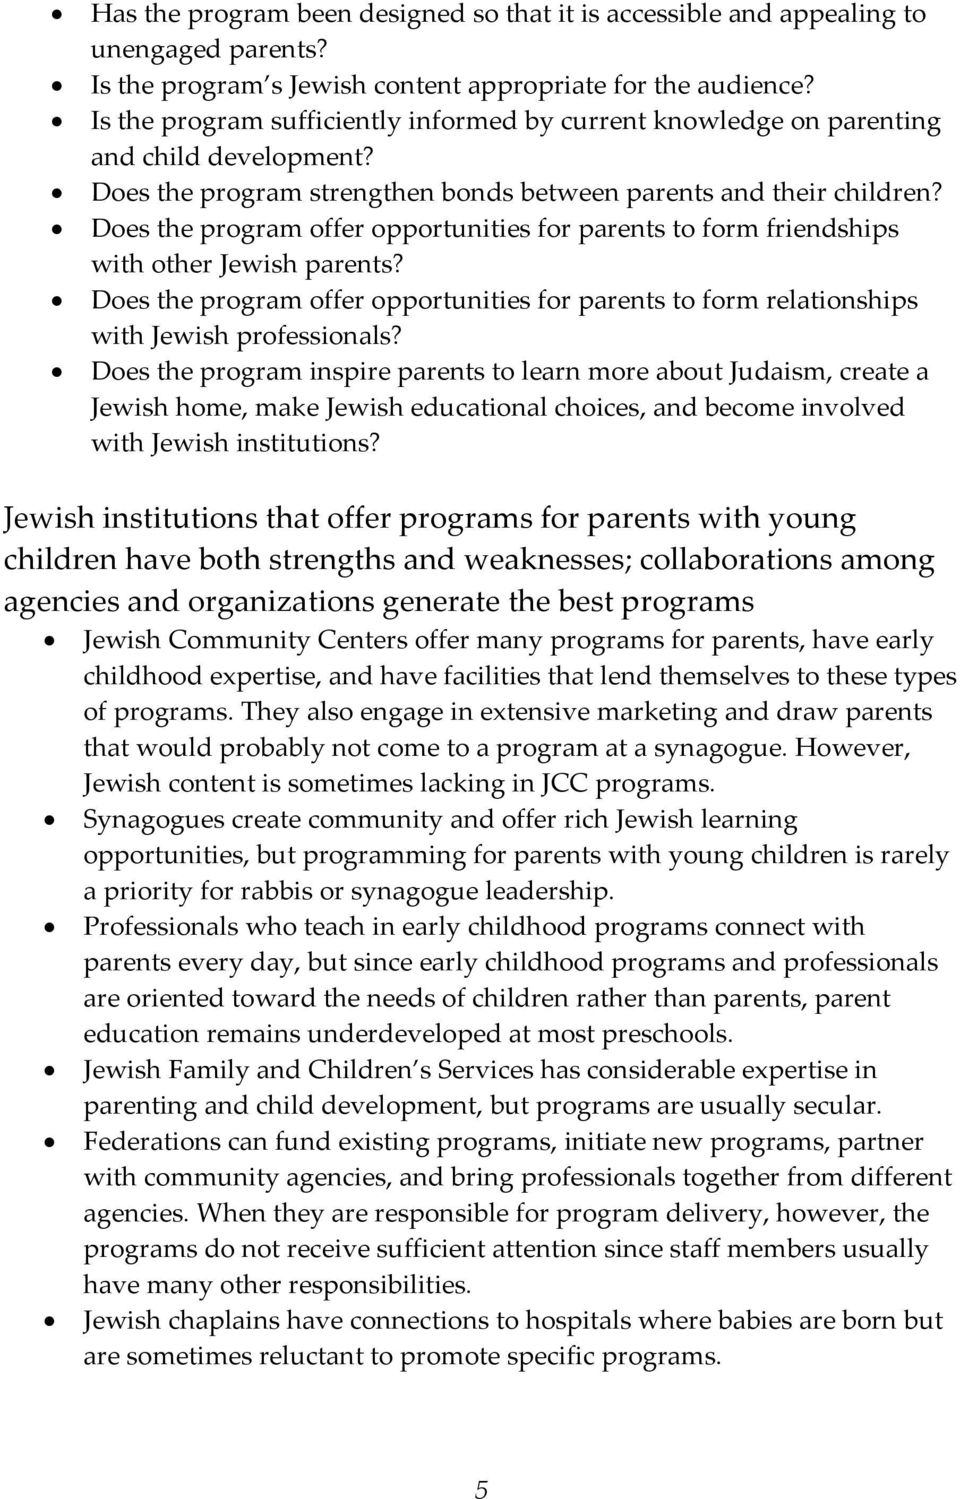 Does the program offer opportunities for parents to form friendships with other Jewish parents? Does the program offer opportunities for parents to form relationships with Jewish professionals?